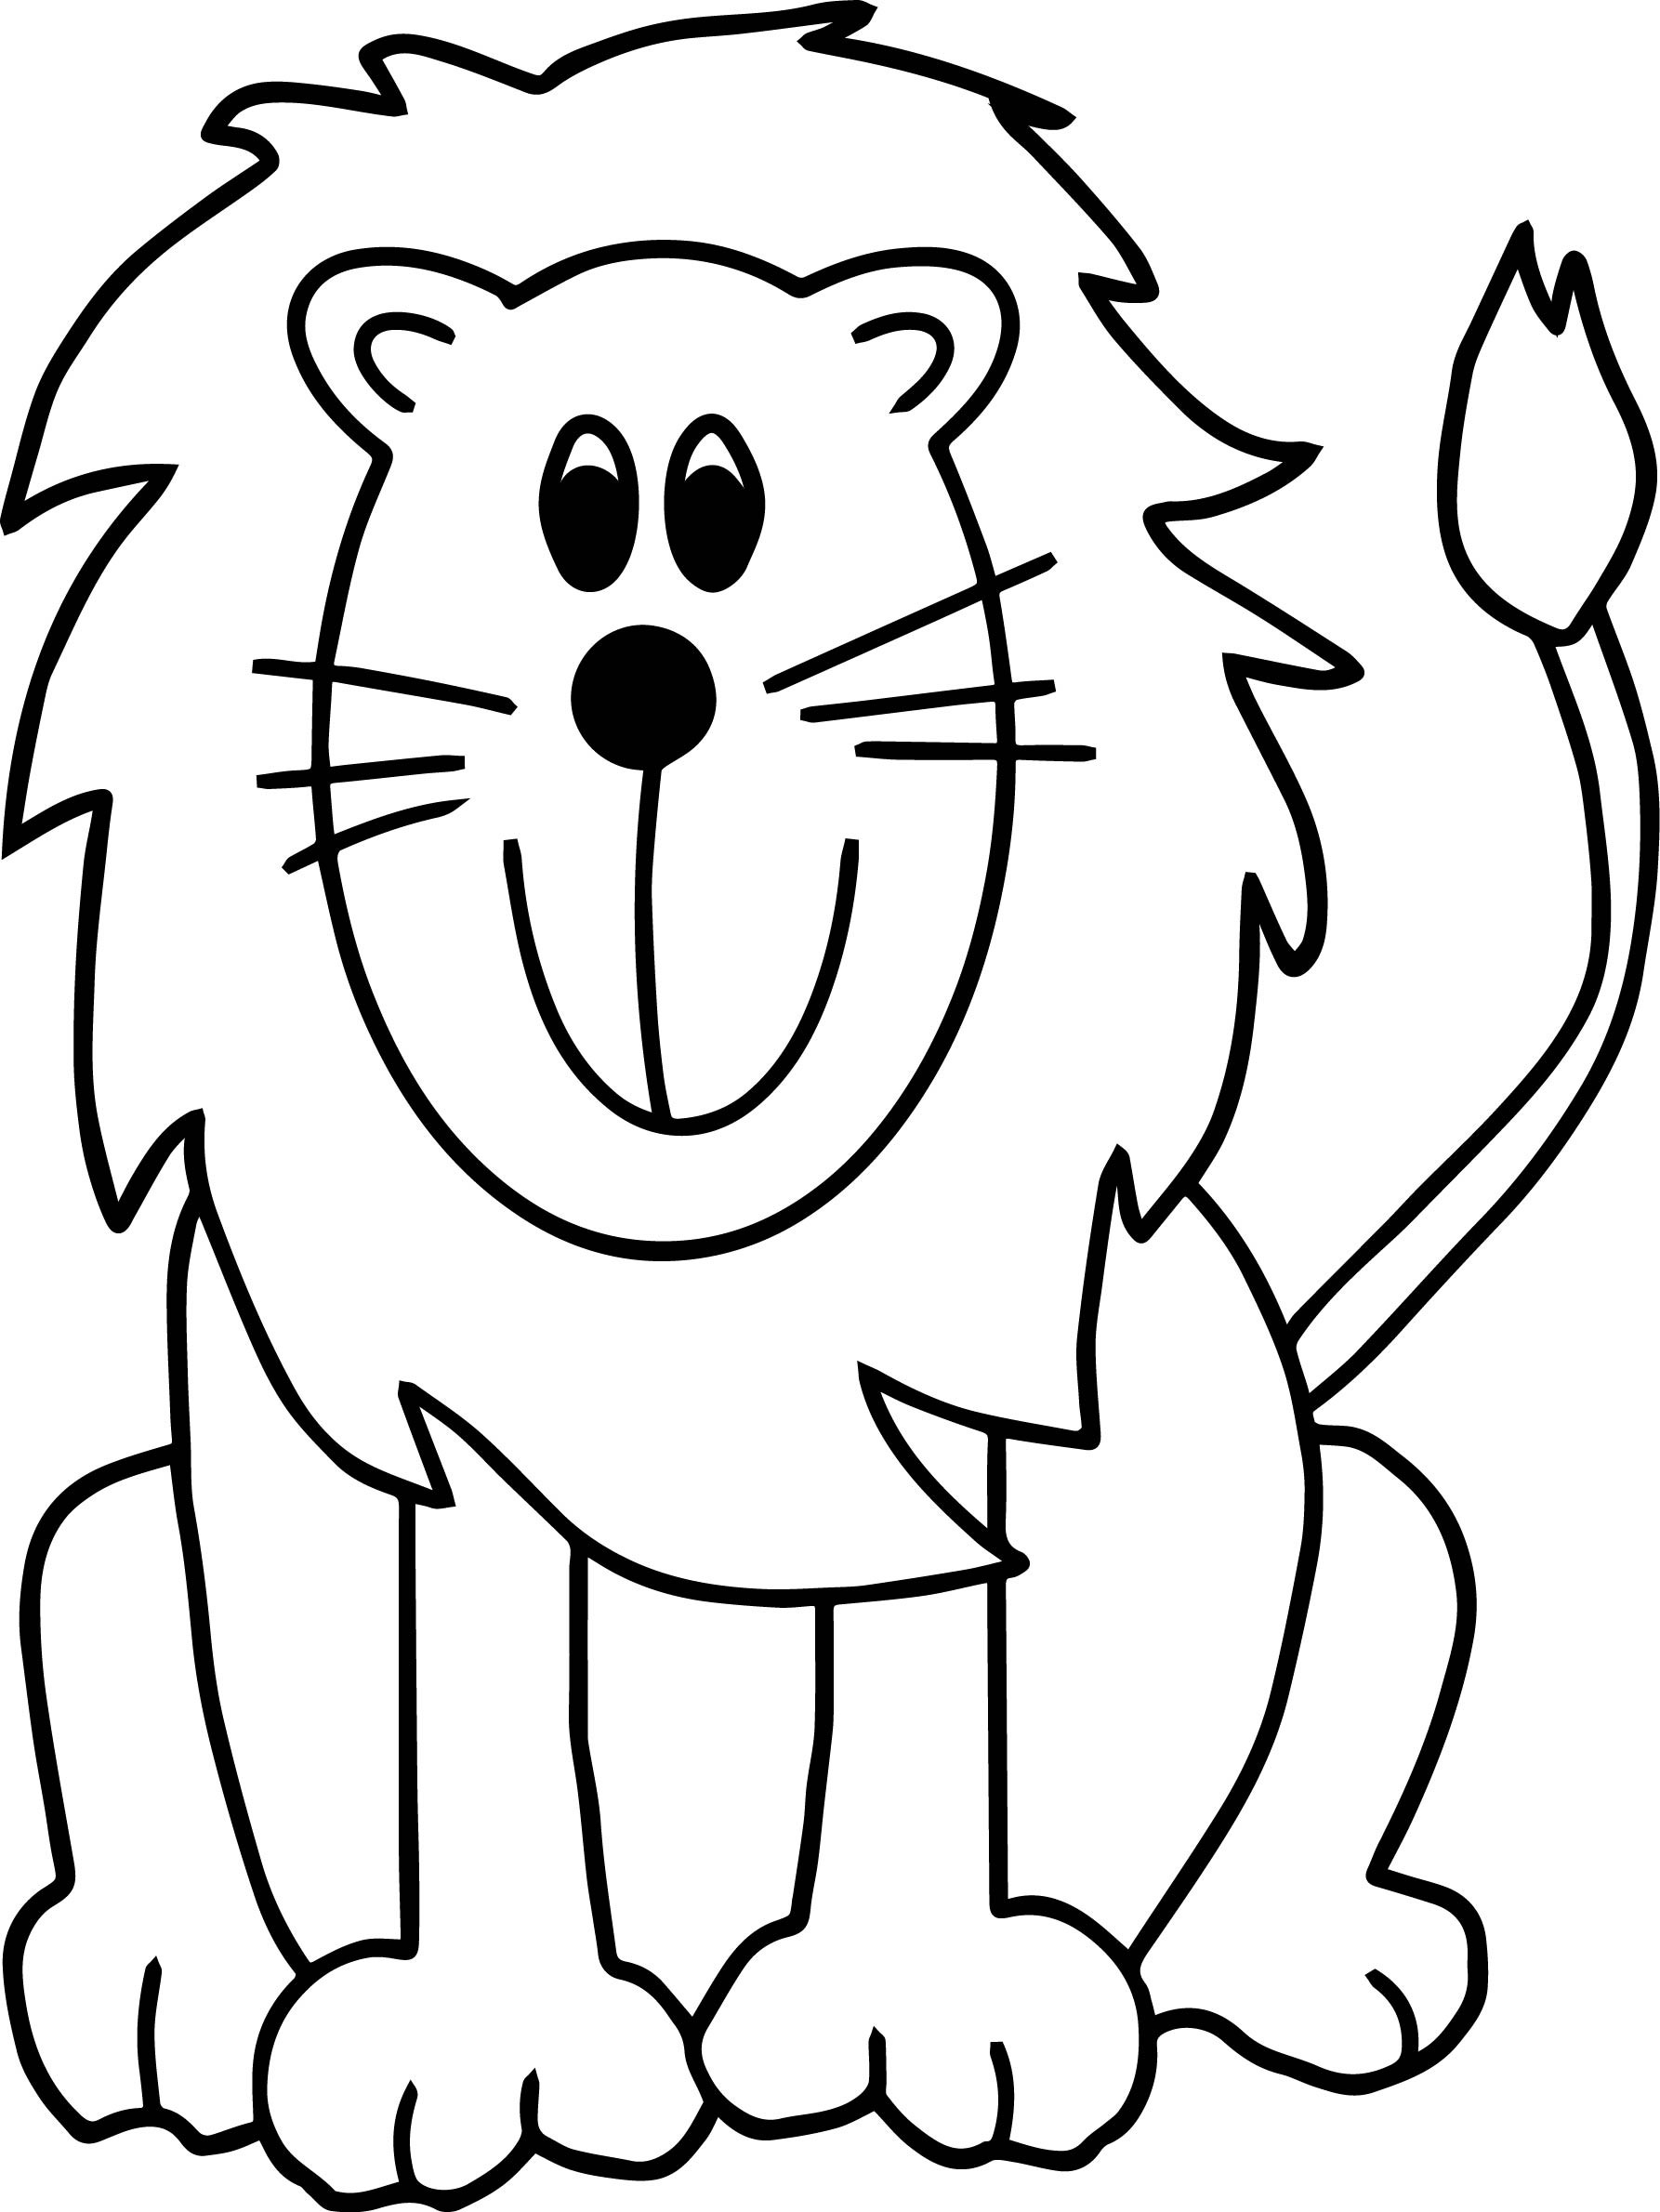 zoo coloring pictures for preschool free printable zoo coloring pages for kids preschool zoo for coloring pictures